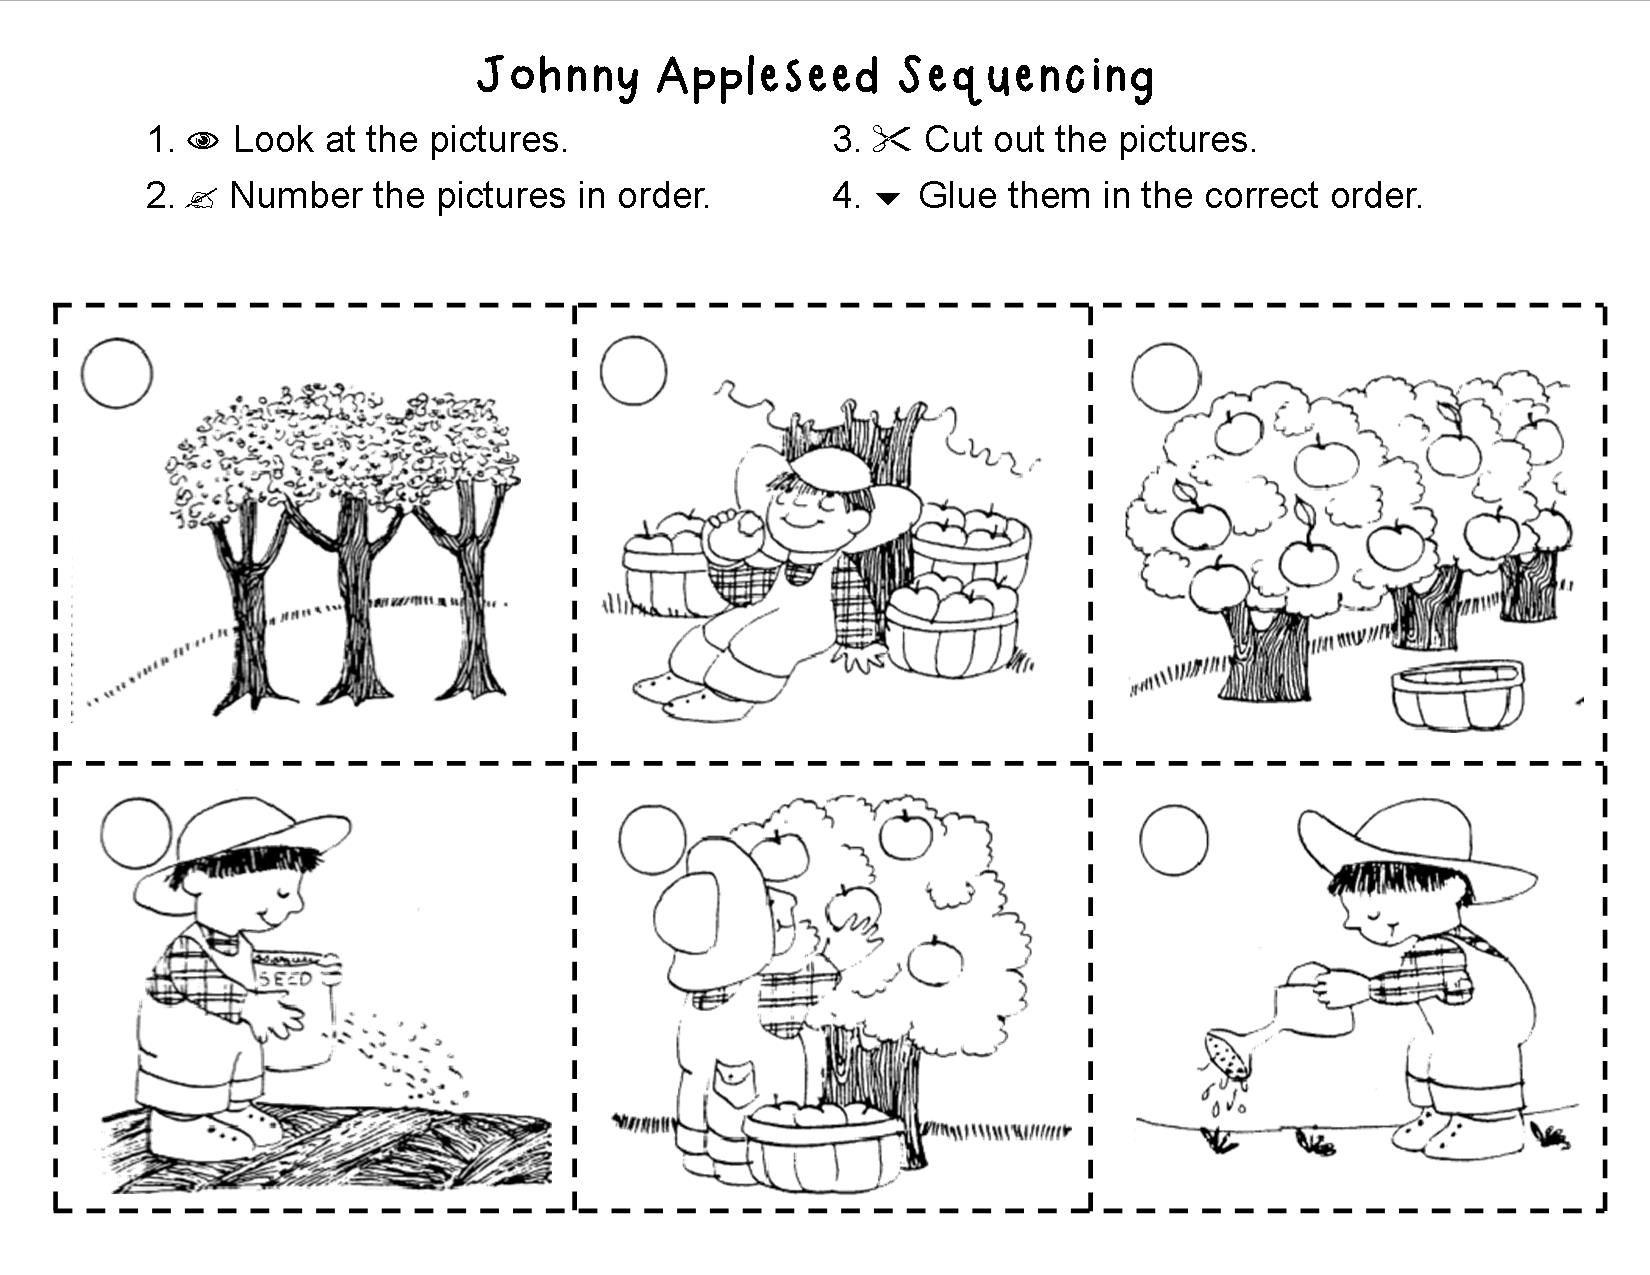 worksheet Johnny Appleseed Worksheets johnny appleseed sequencing made for 1st grade kindergarten grade